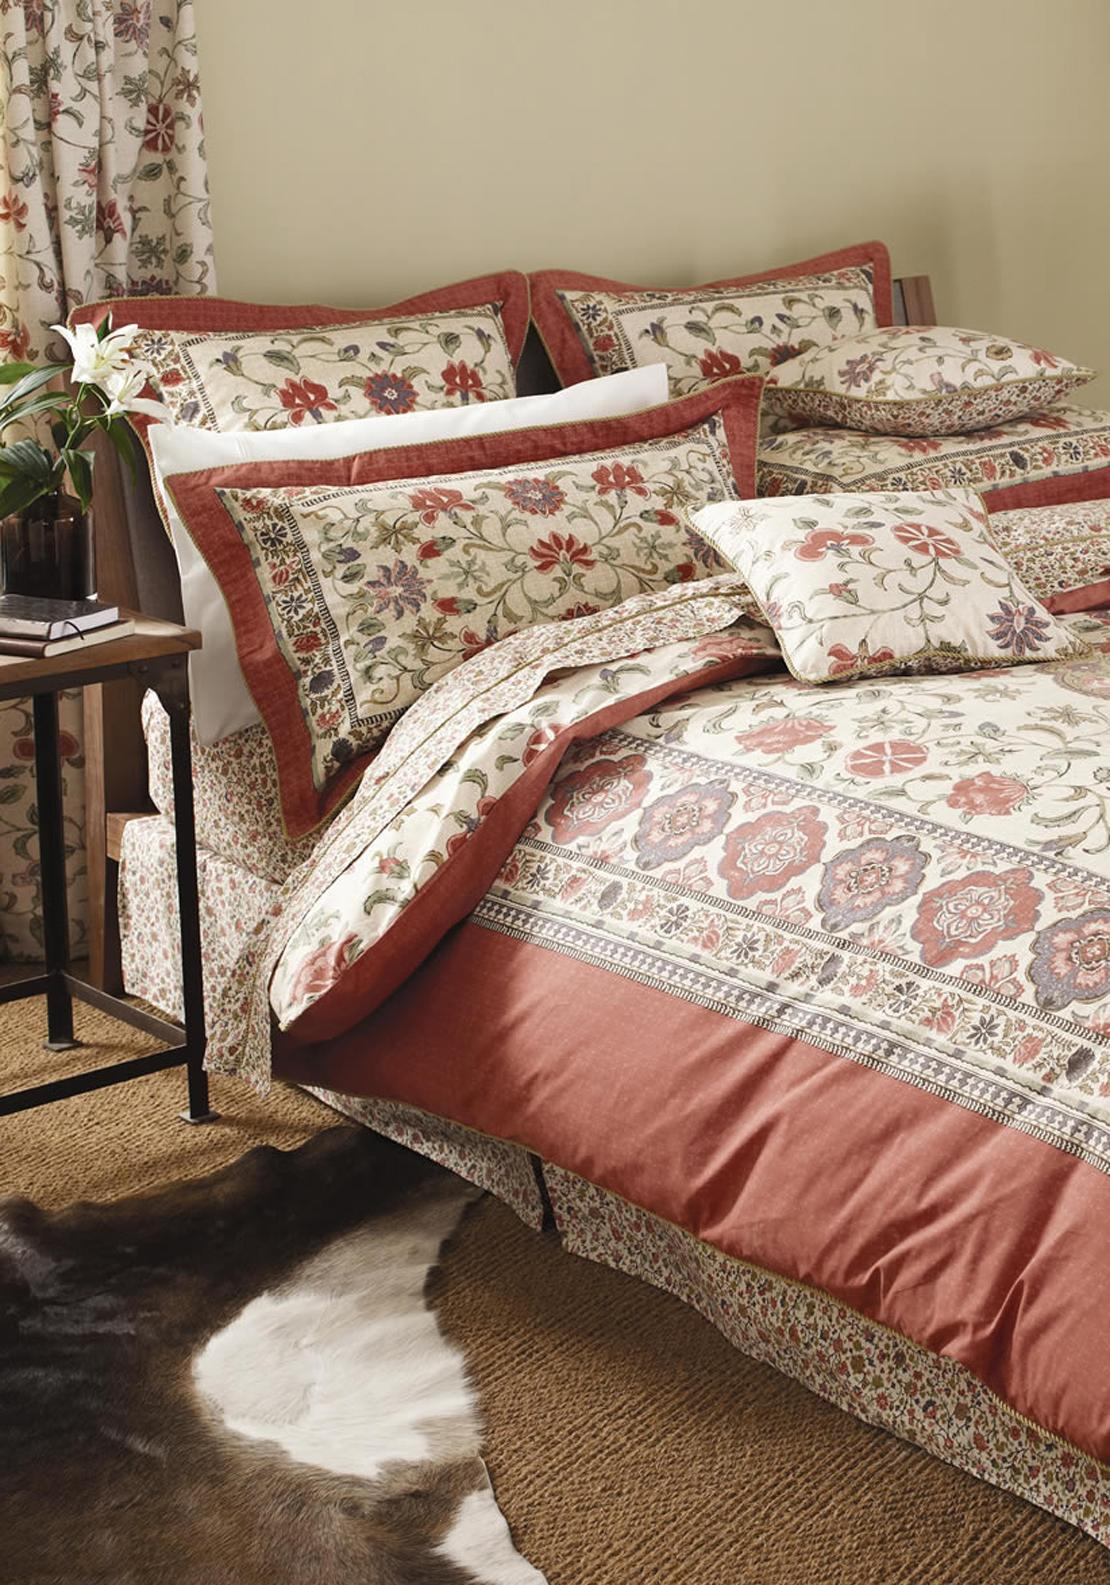 V&A Kalamkari Duvet Cover Set, Multi